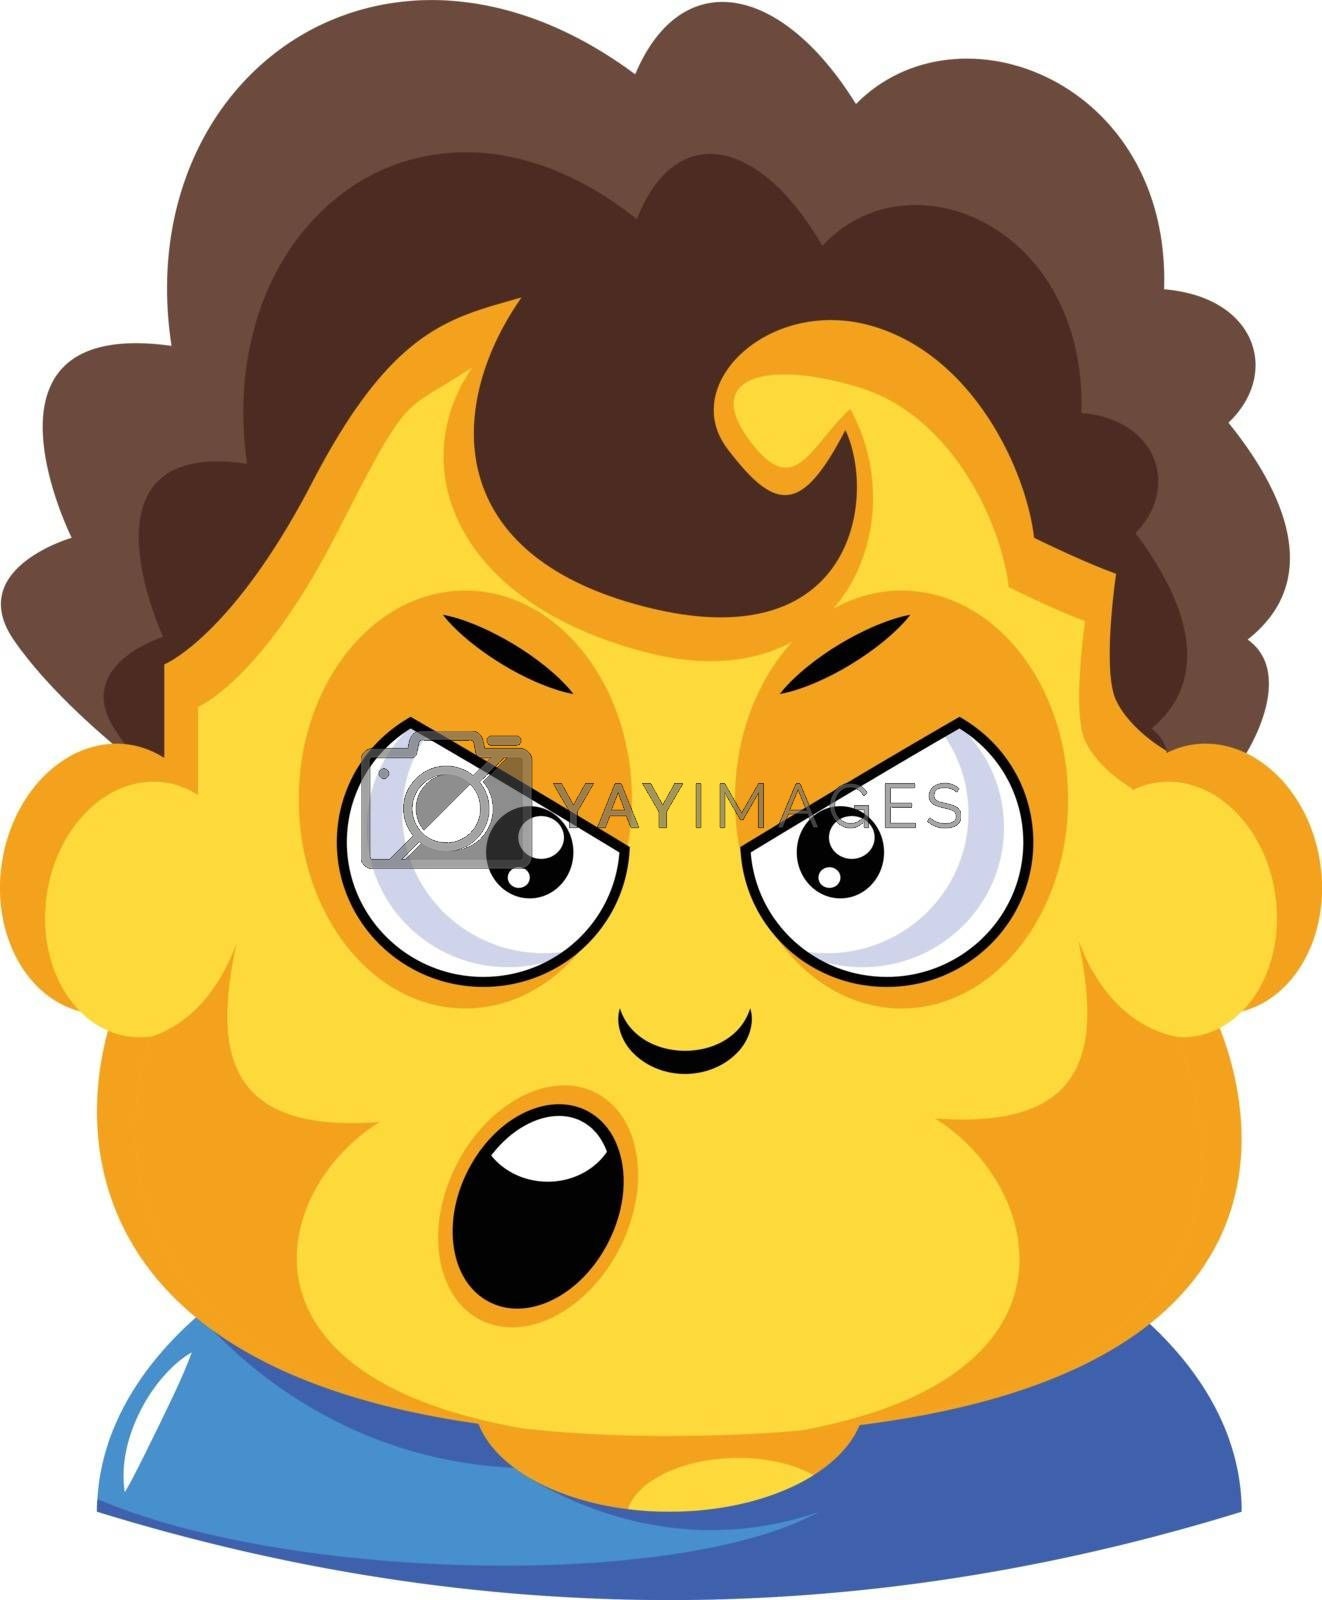 Royalty free image of Student with curly brown hair is cranky illustration vector on w by Morphart